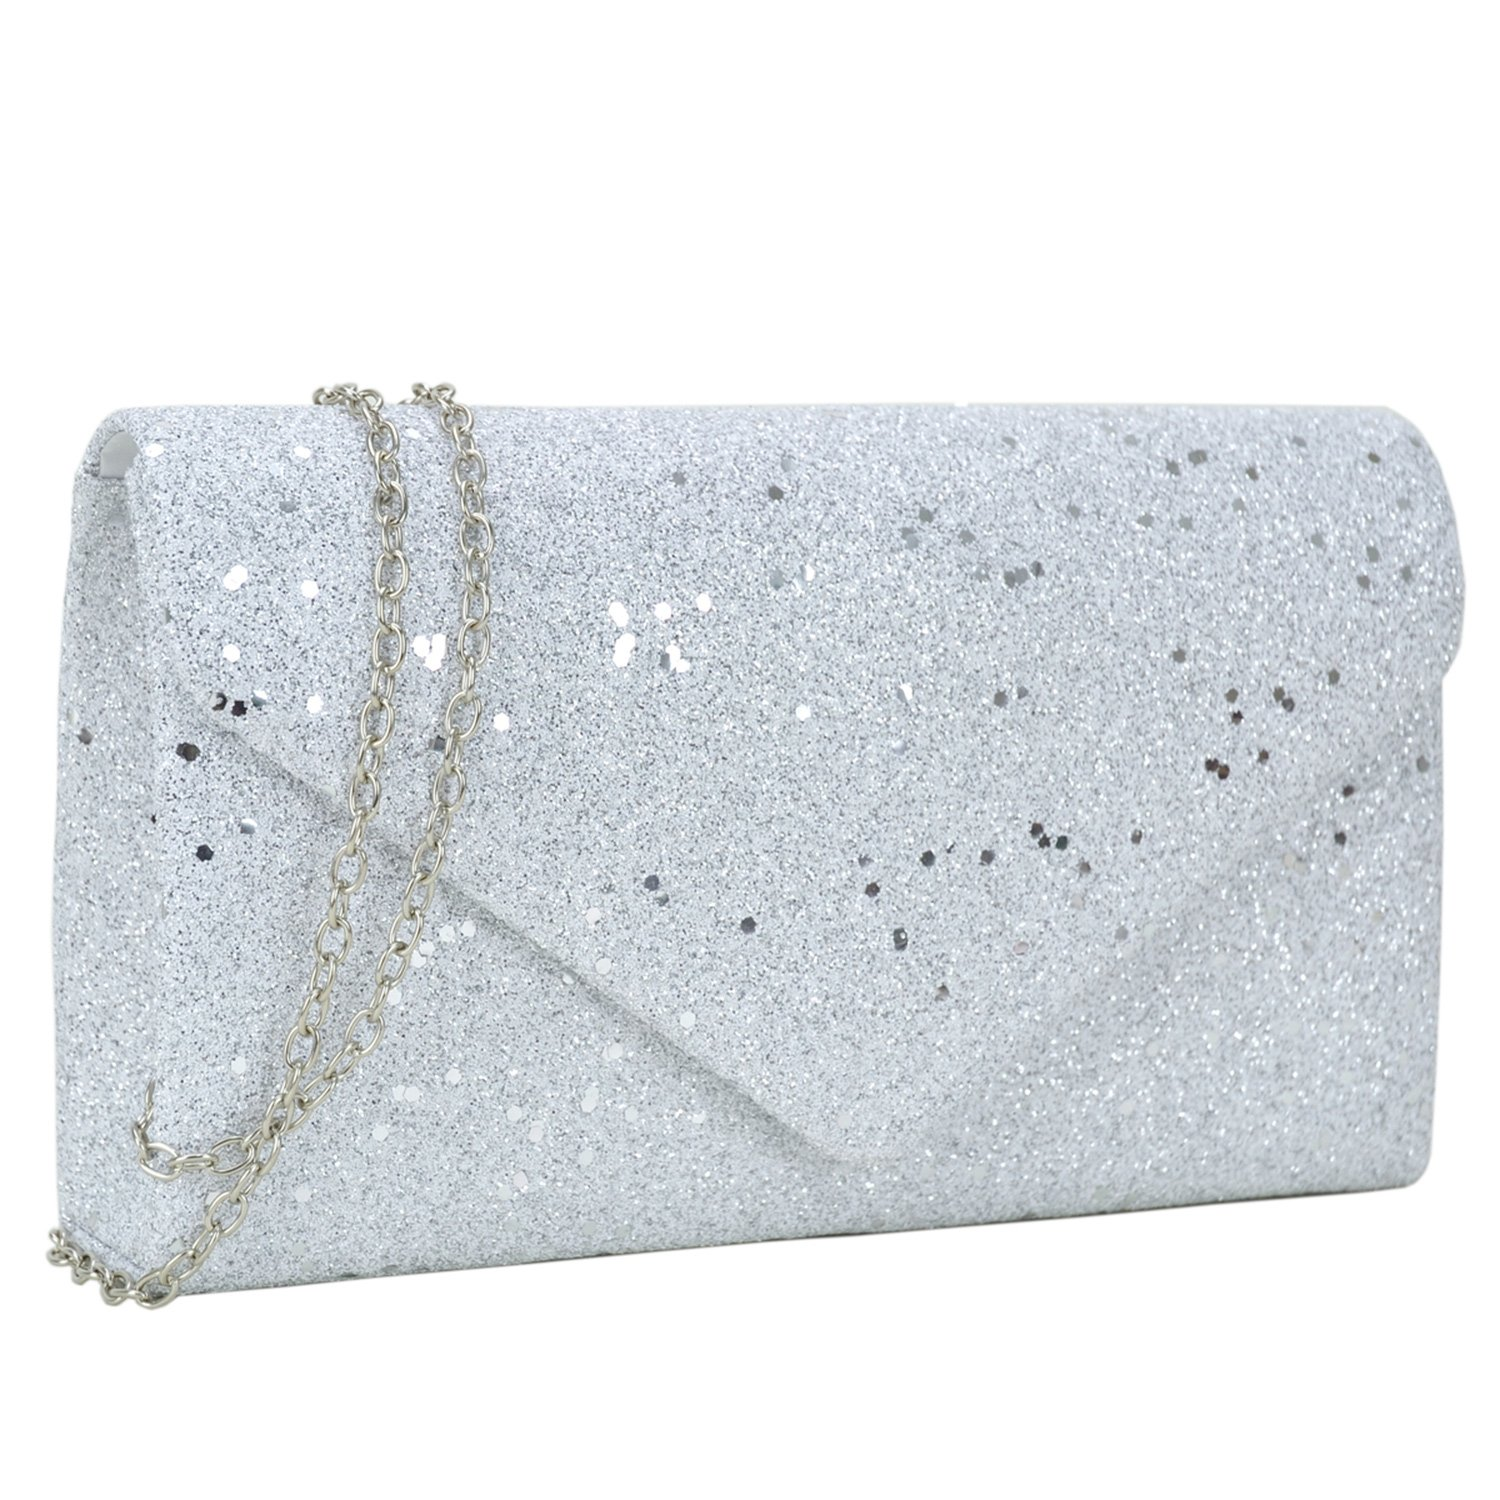 Women Glistening Evening Clutch Bags Formal Party Clutches Wedding Purses Cocktail Prom Clutches